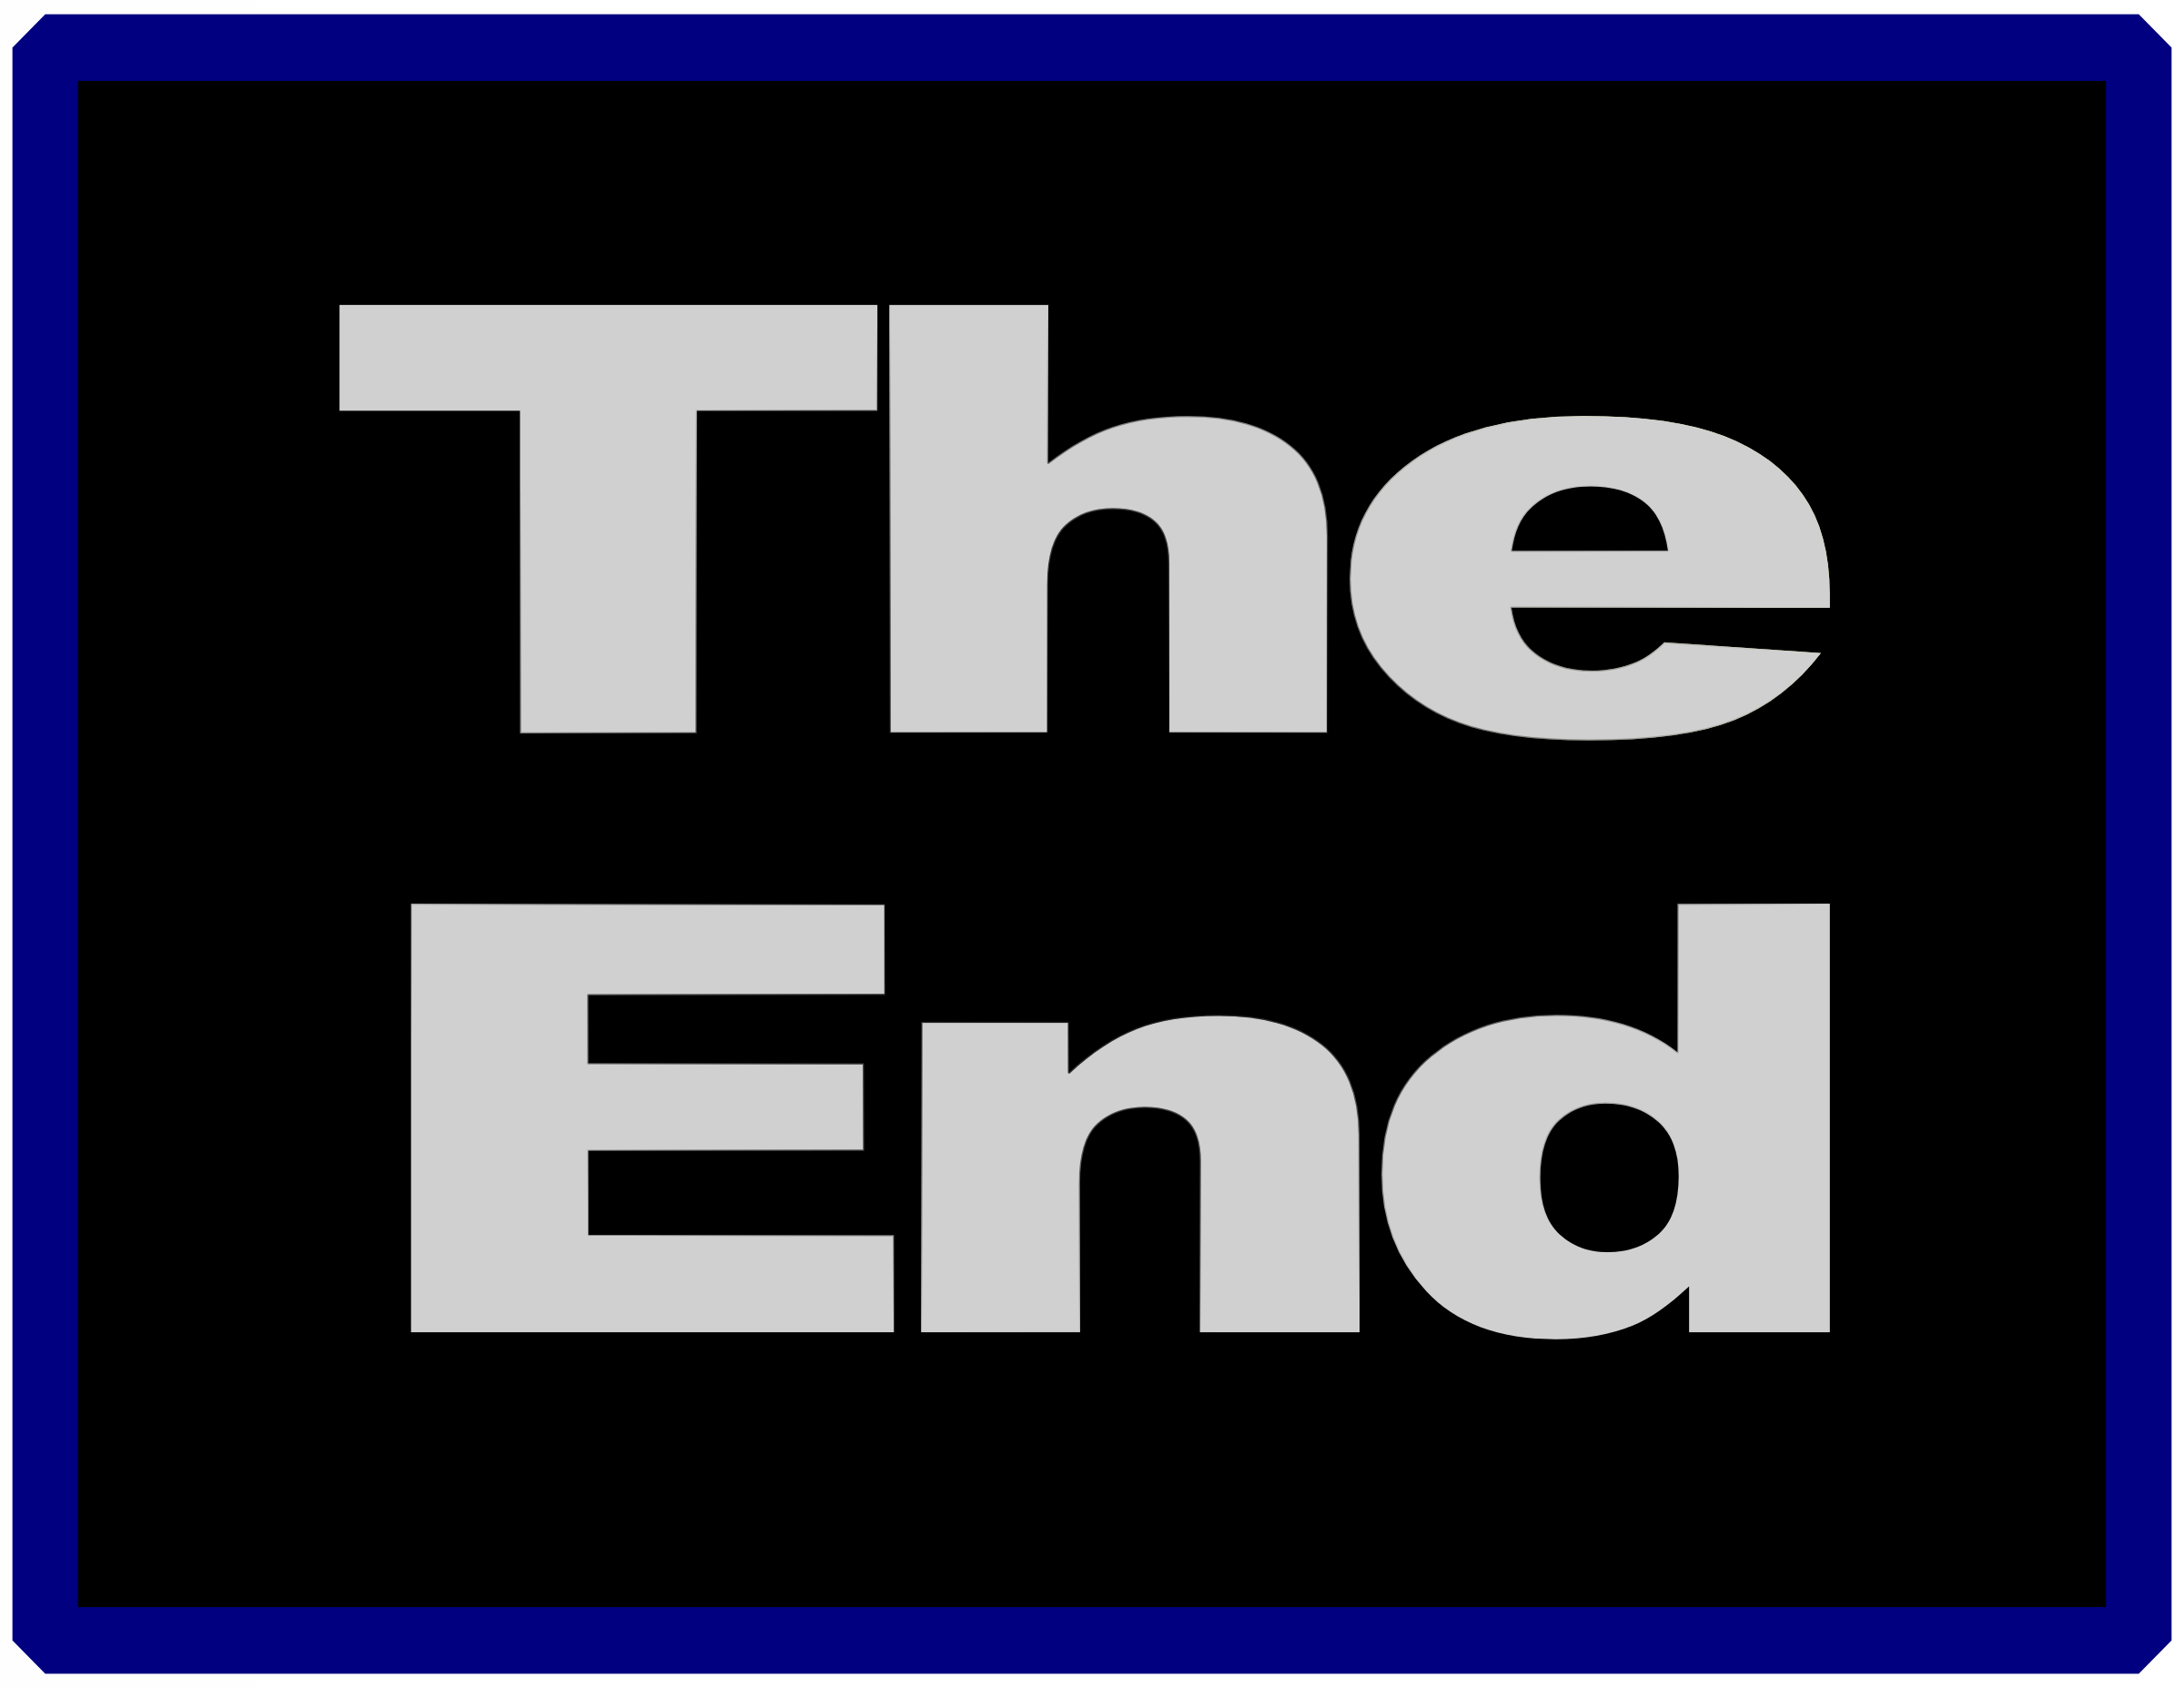 clipart the end rh openclipart org the end clip art book the end sign clipart